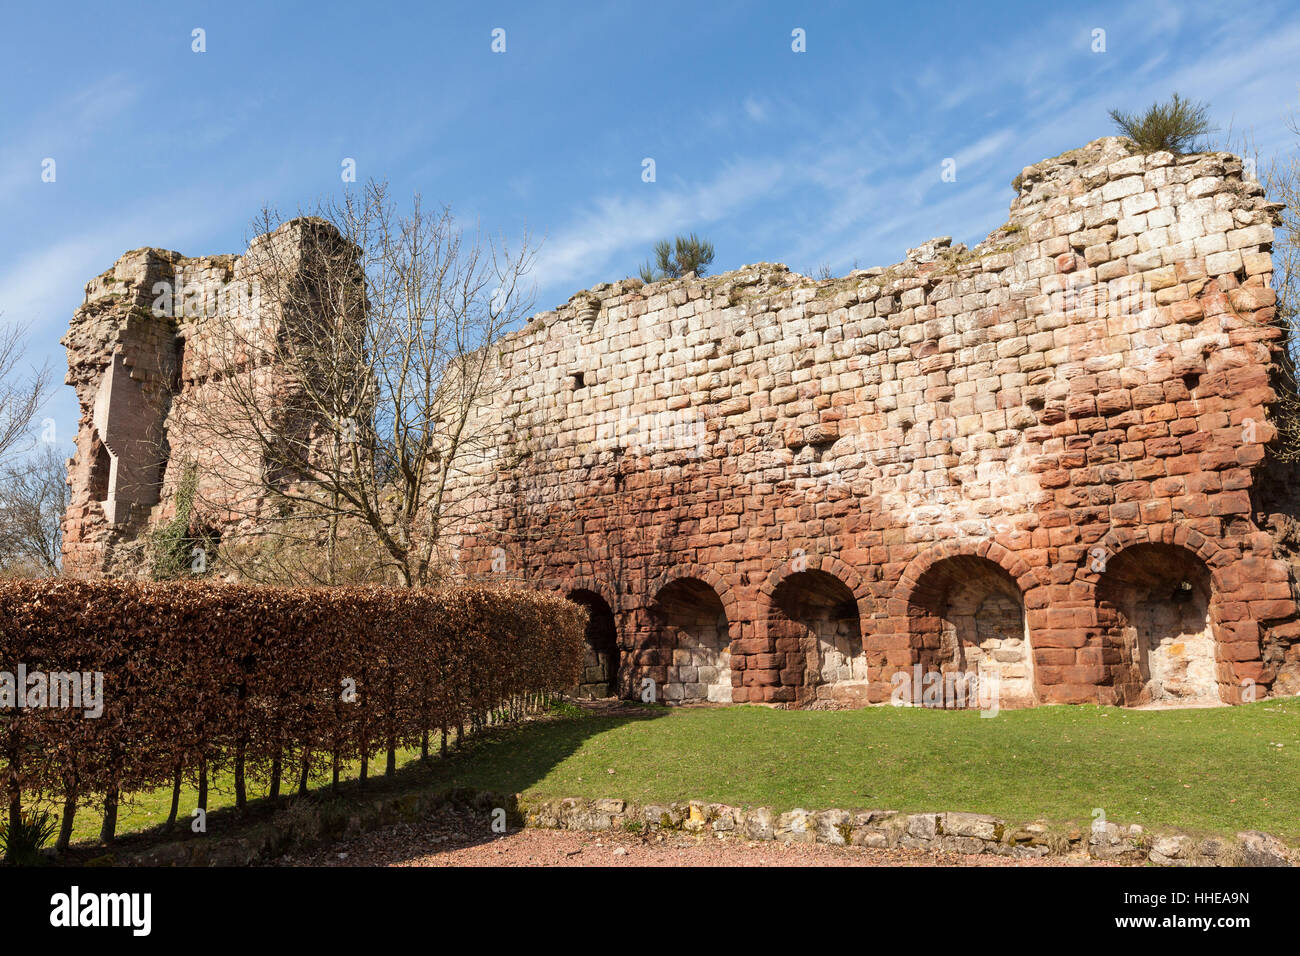 Rosslyn Castle Ruins at Roslin in Scotland. - Stock Image